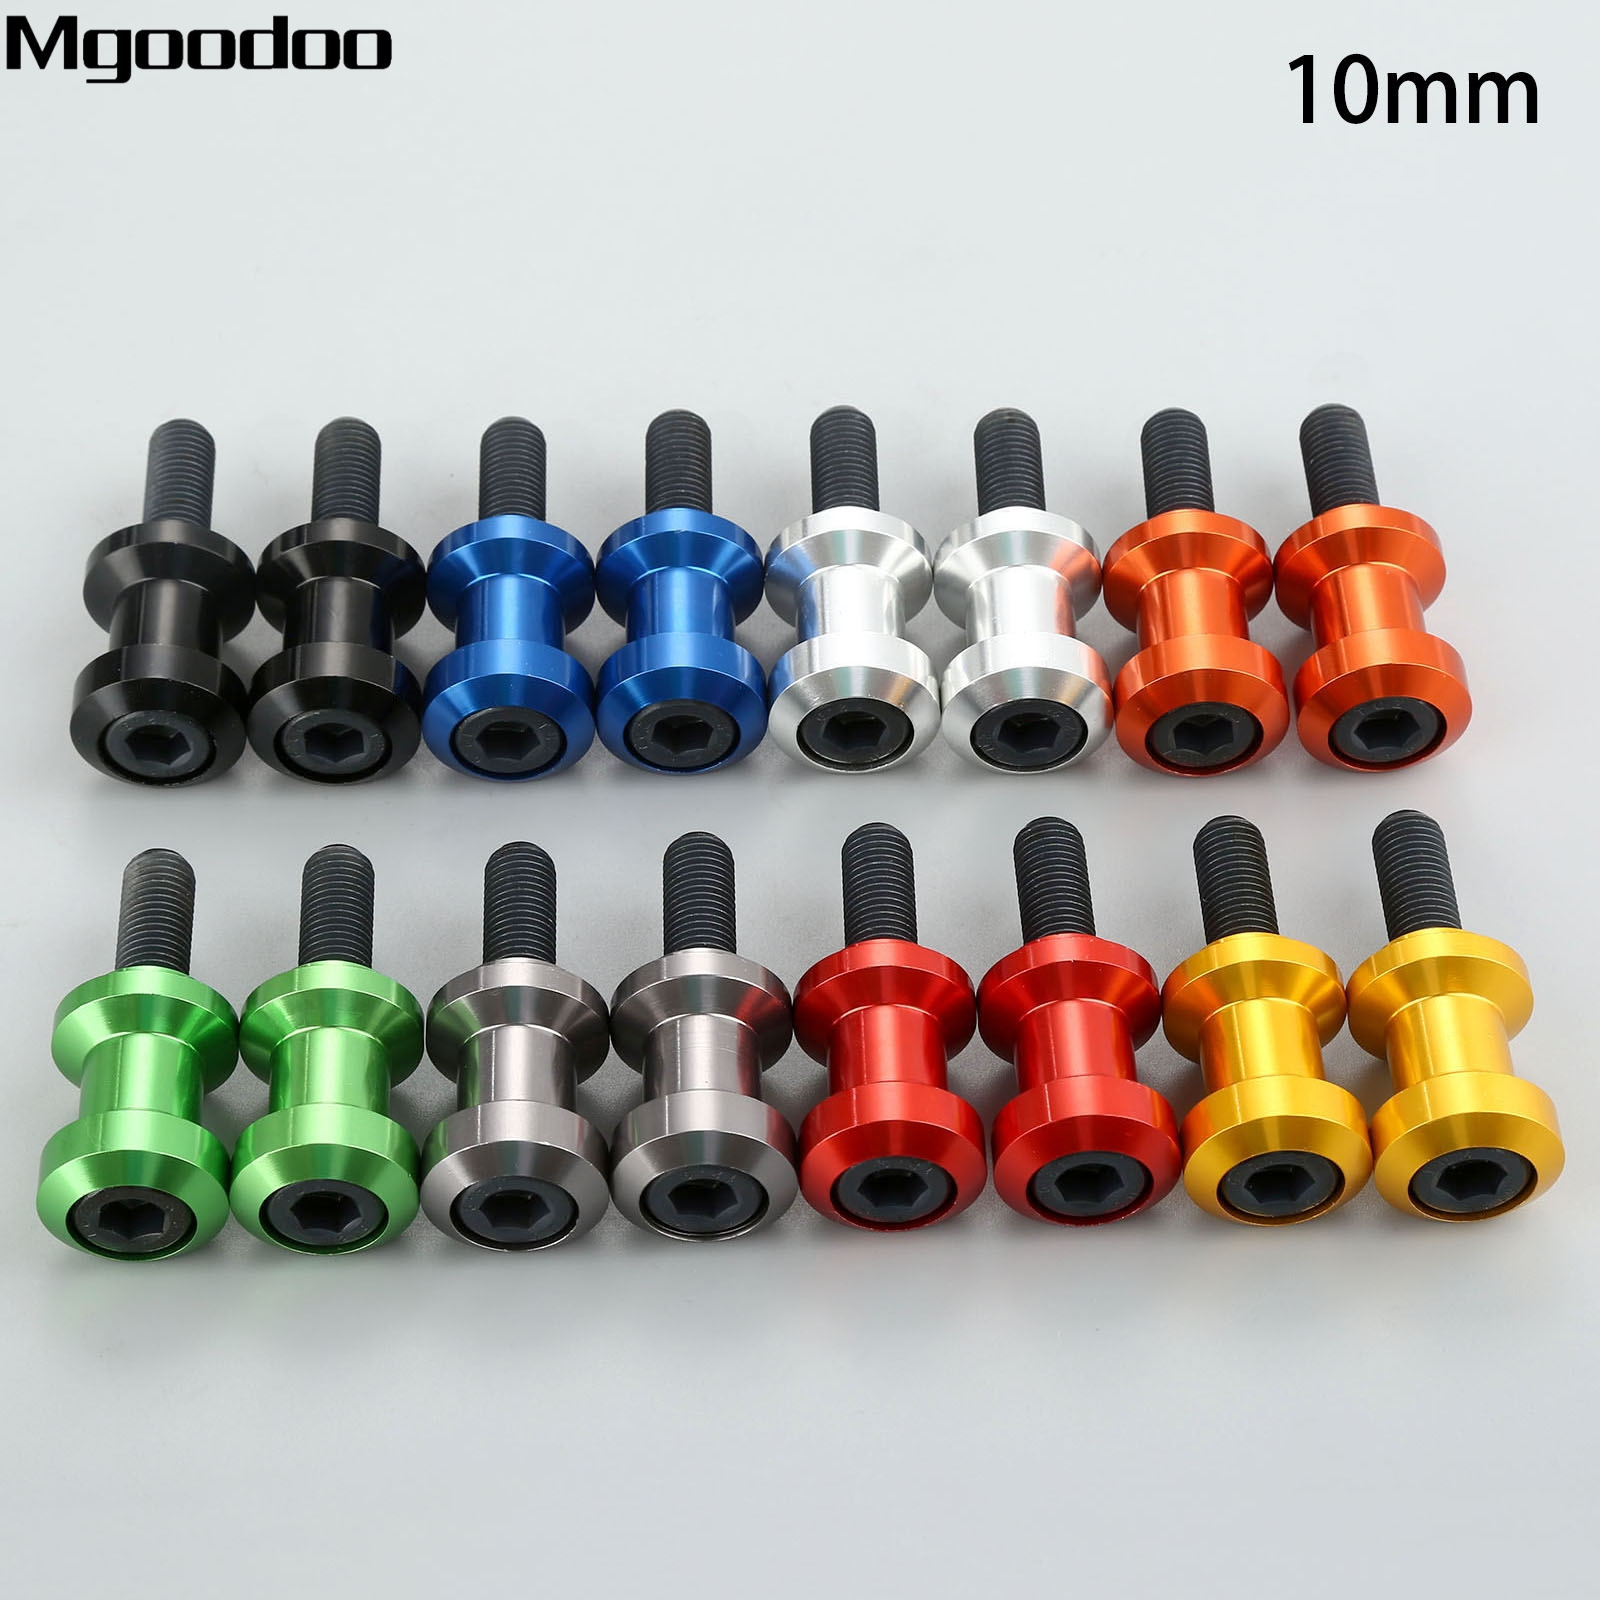 Mgoodoo CNC Aluminium 10mm Motorcycle Swingarm Spools Sliders For Yamaha YZF750/1000 FZR400/600/1000 KTM 690 990 Duke 1190 RC8 makeup sponge blender blending puff flawless powder foundation make up sponge cosmetics maquiagem pinceaux de maquillage